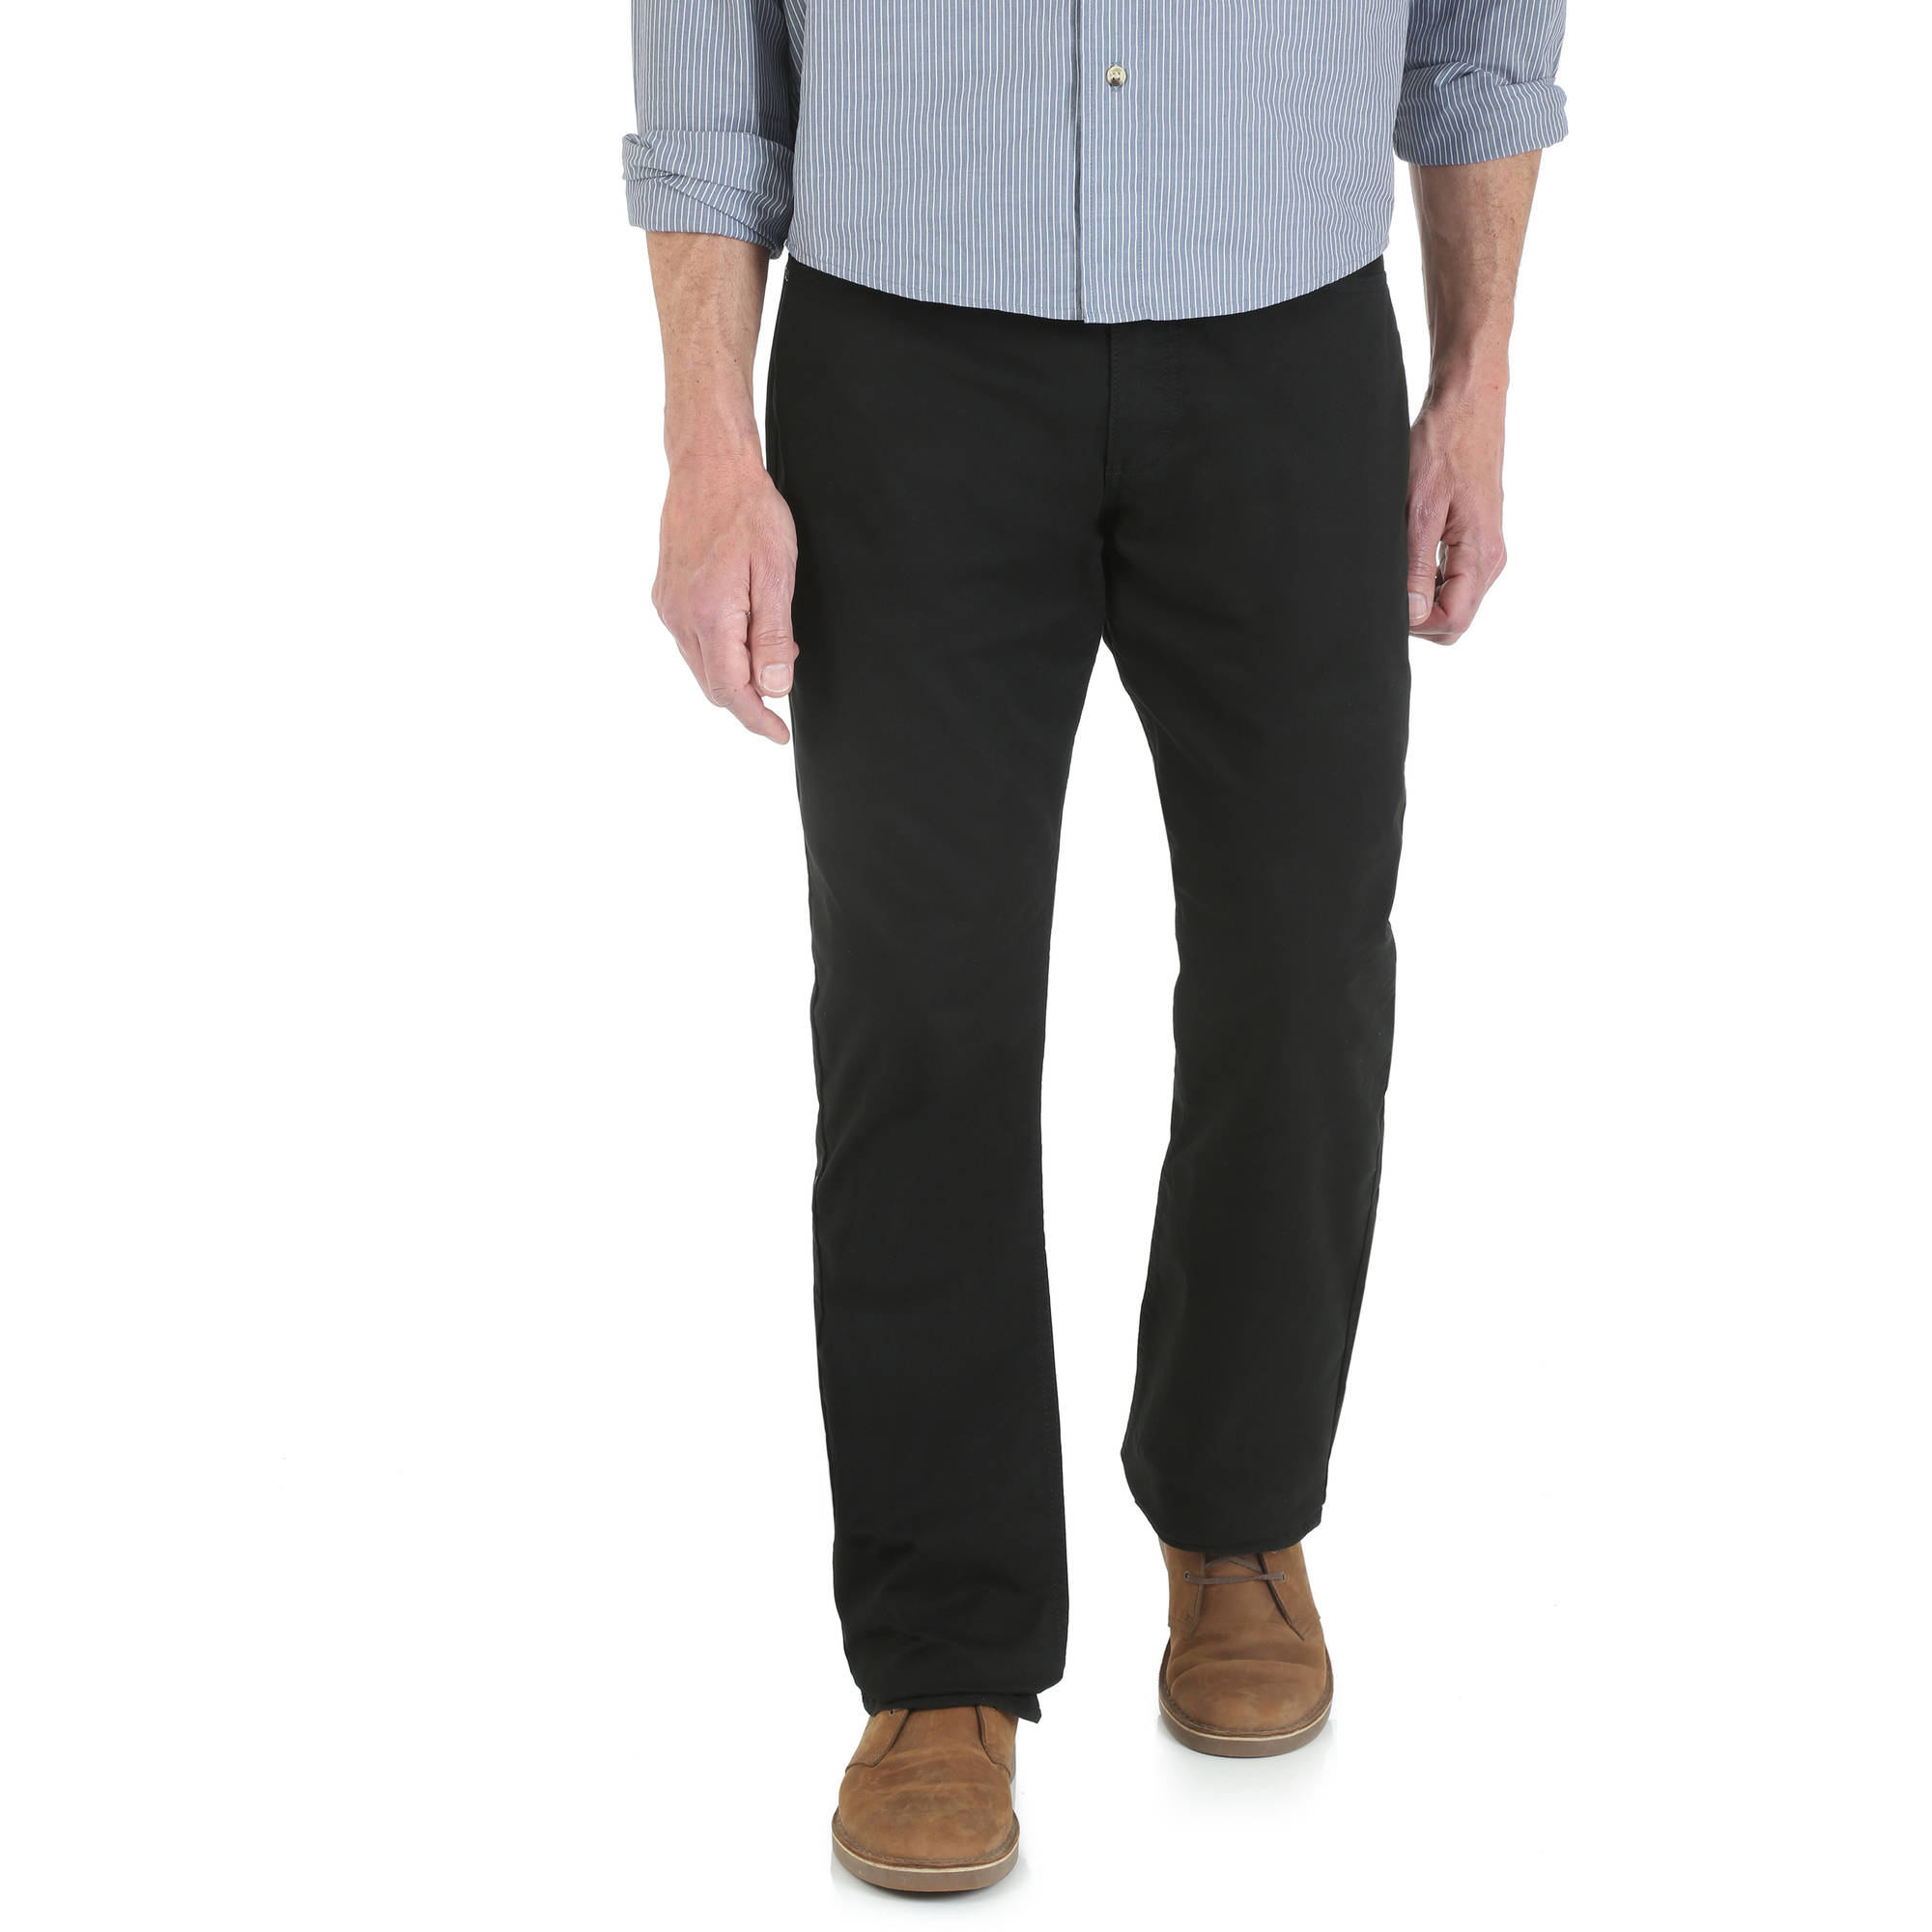 Wrangler - Men's Straight Fit 5 Pocket Pant - Walmart.com